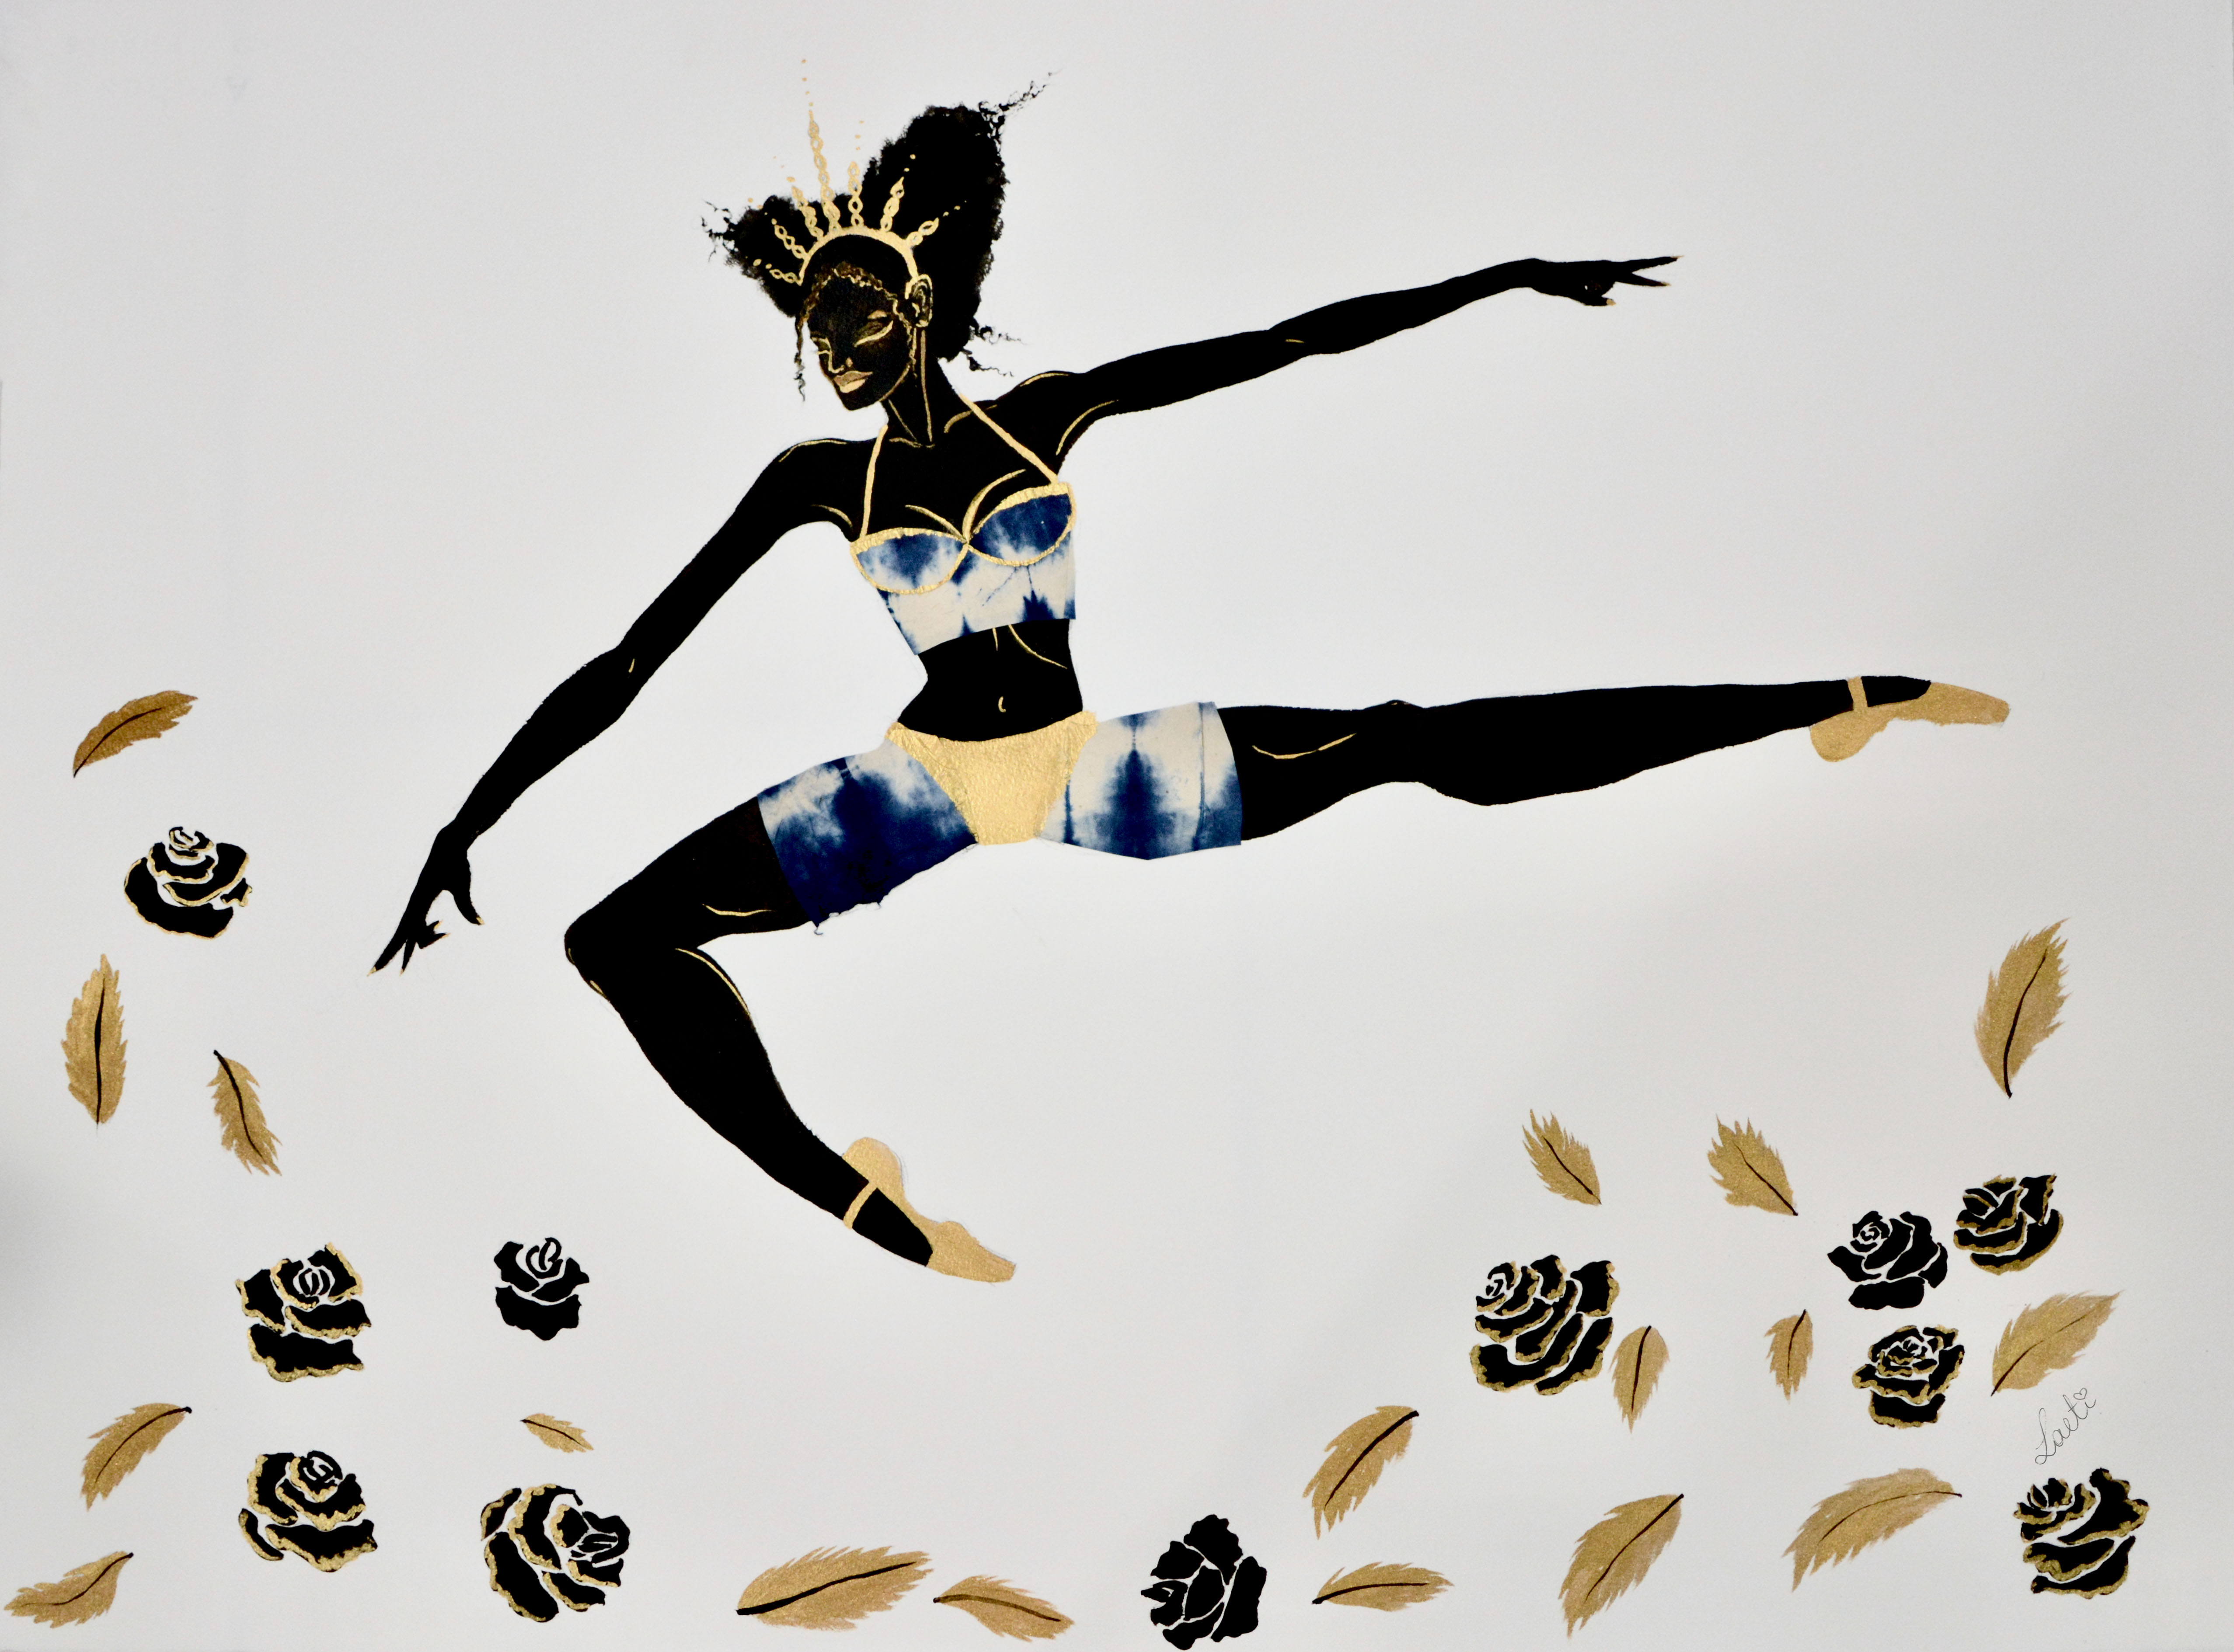 Black Figure: Leaping Dancer